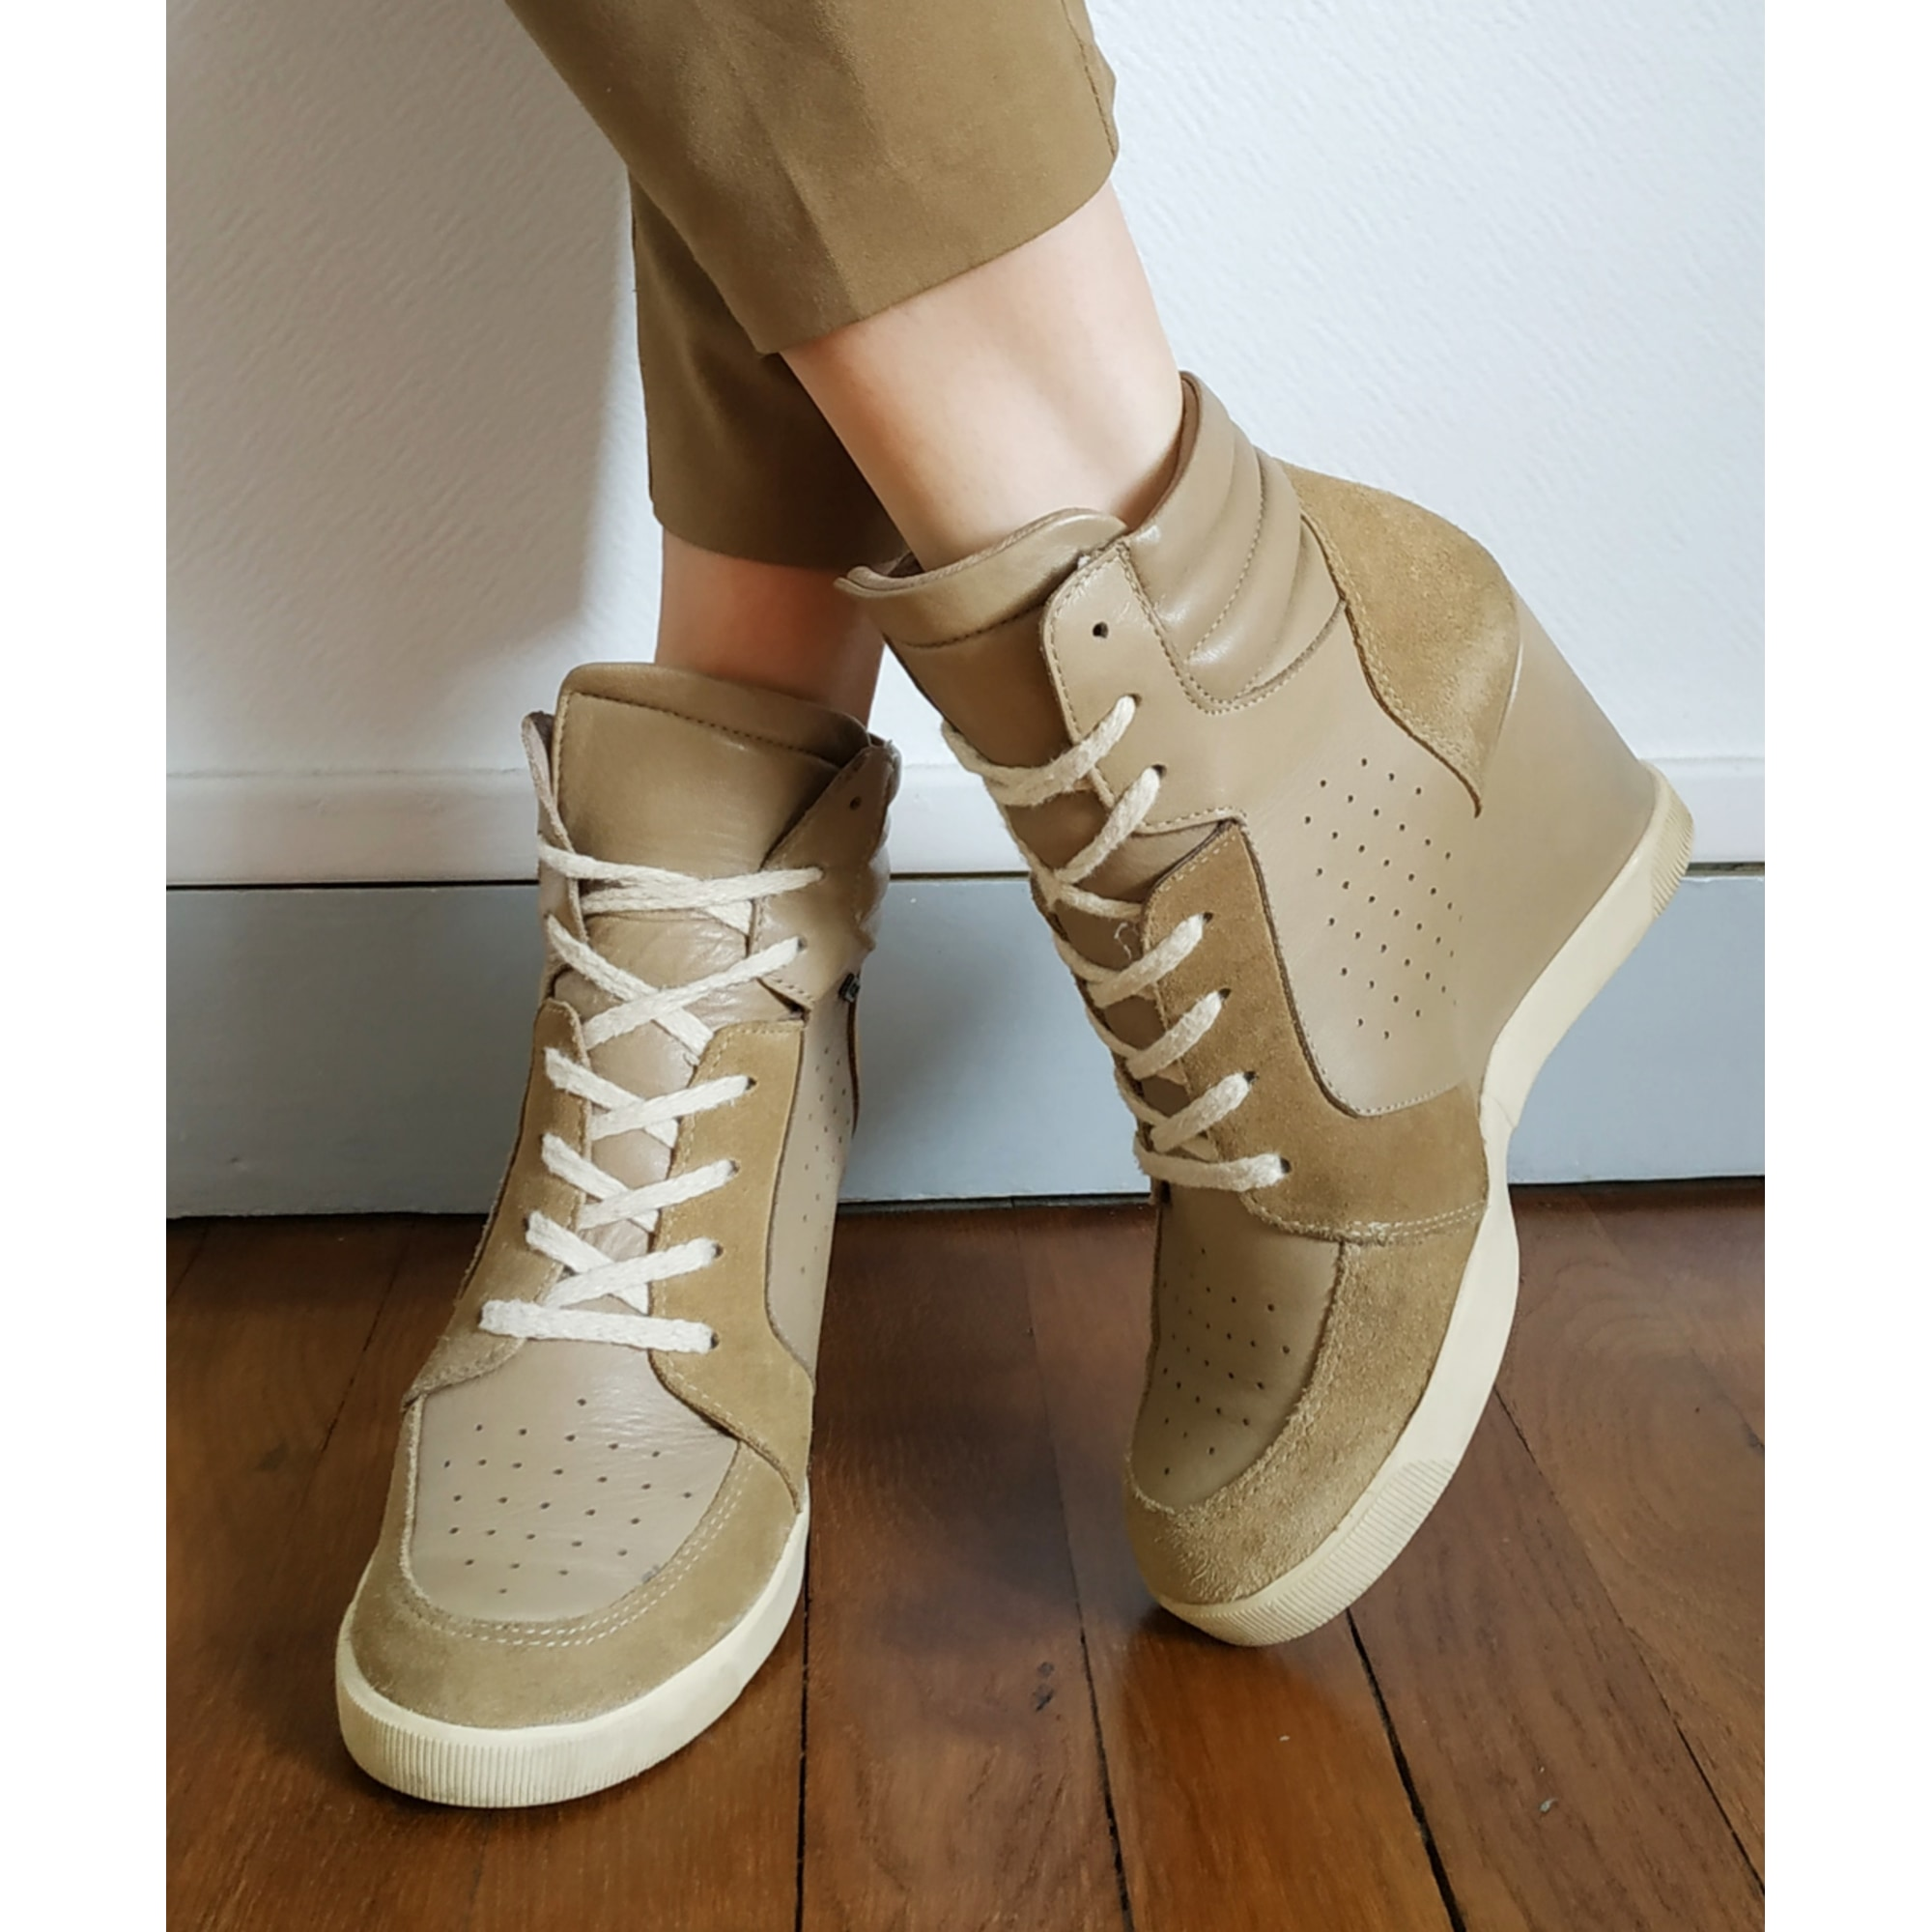 Chaussures à lacets  BEE FLY Beige, camel